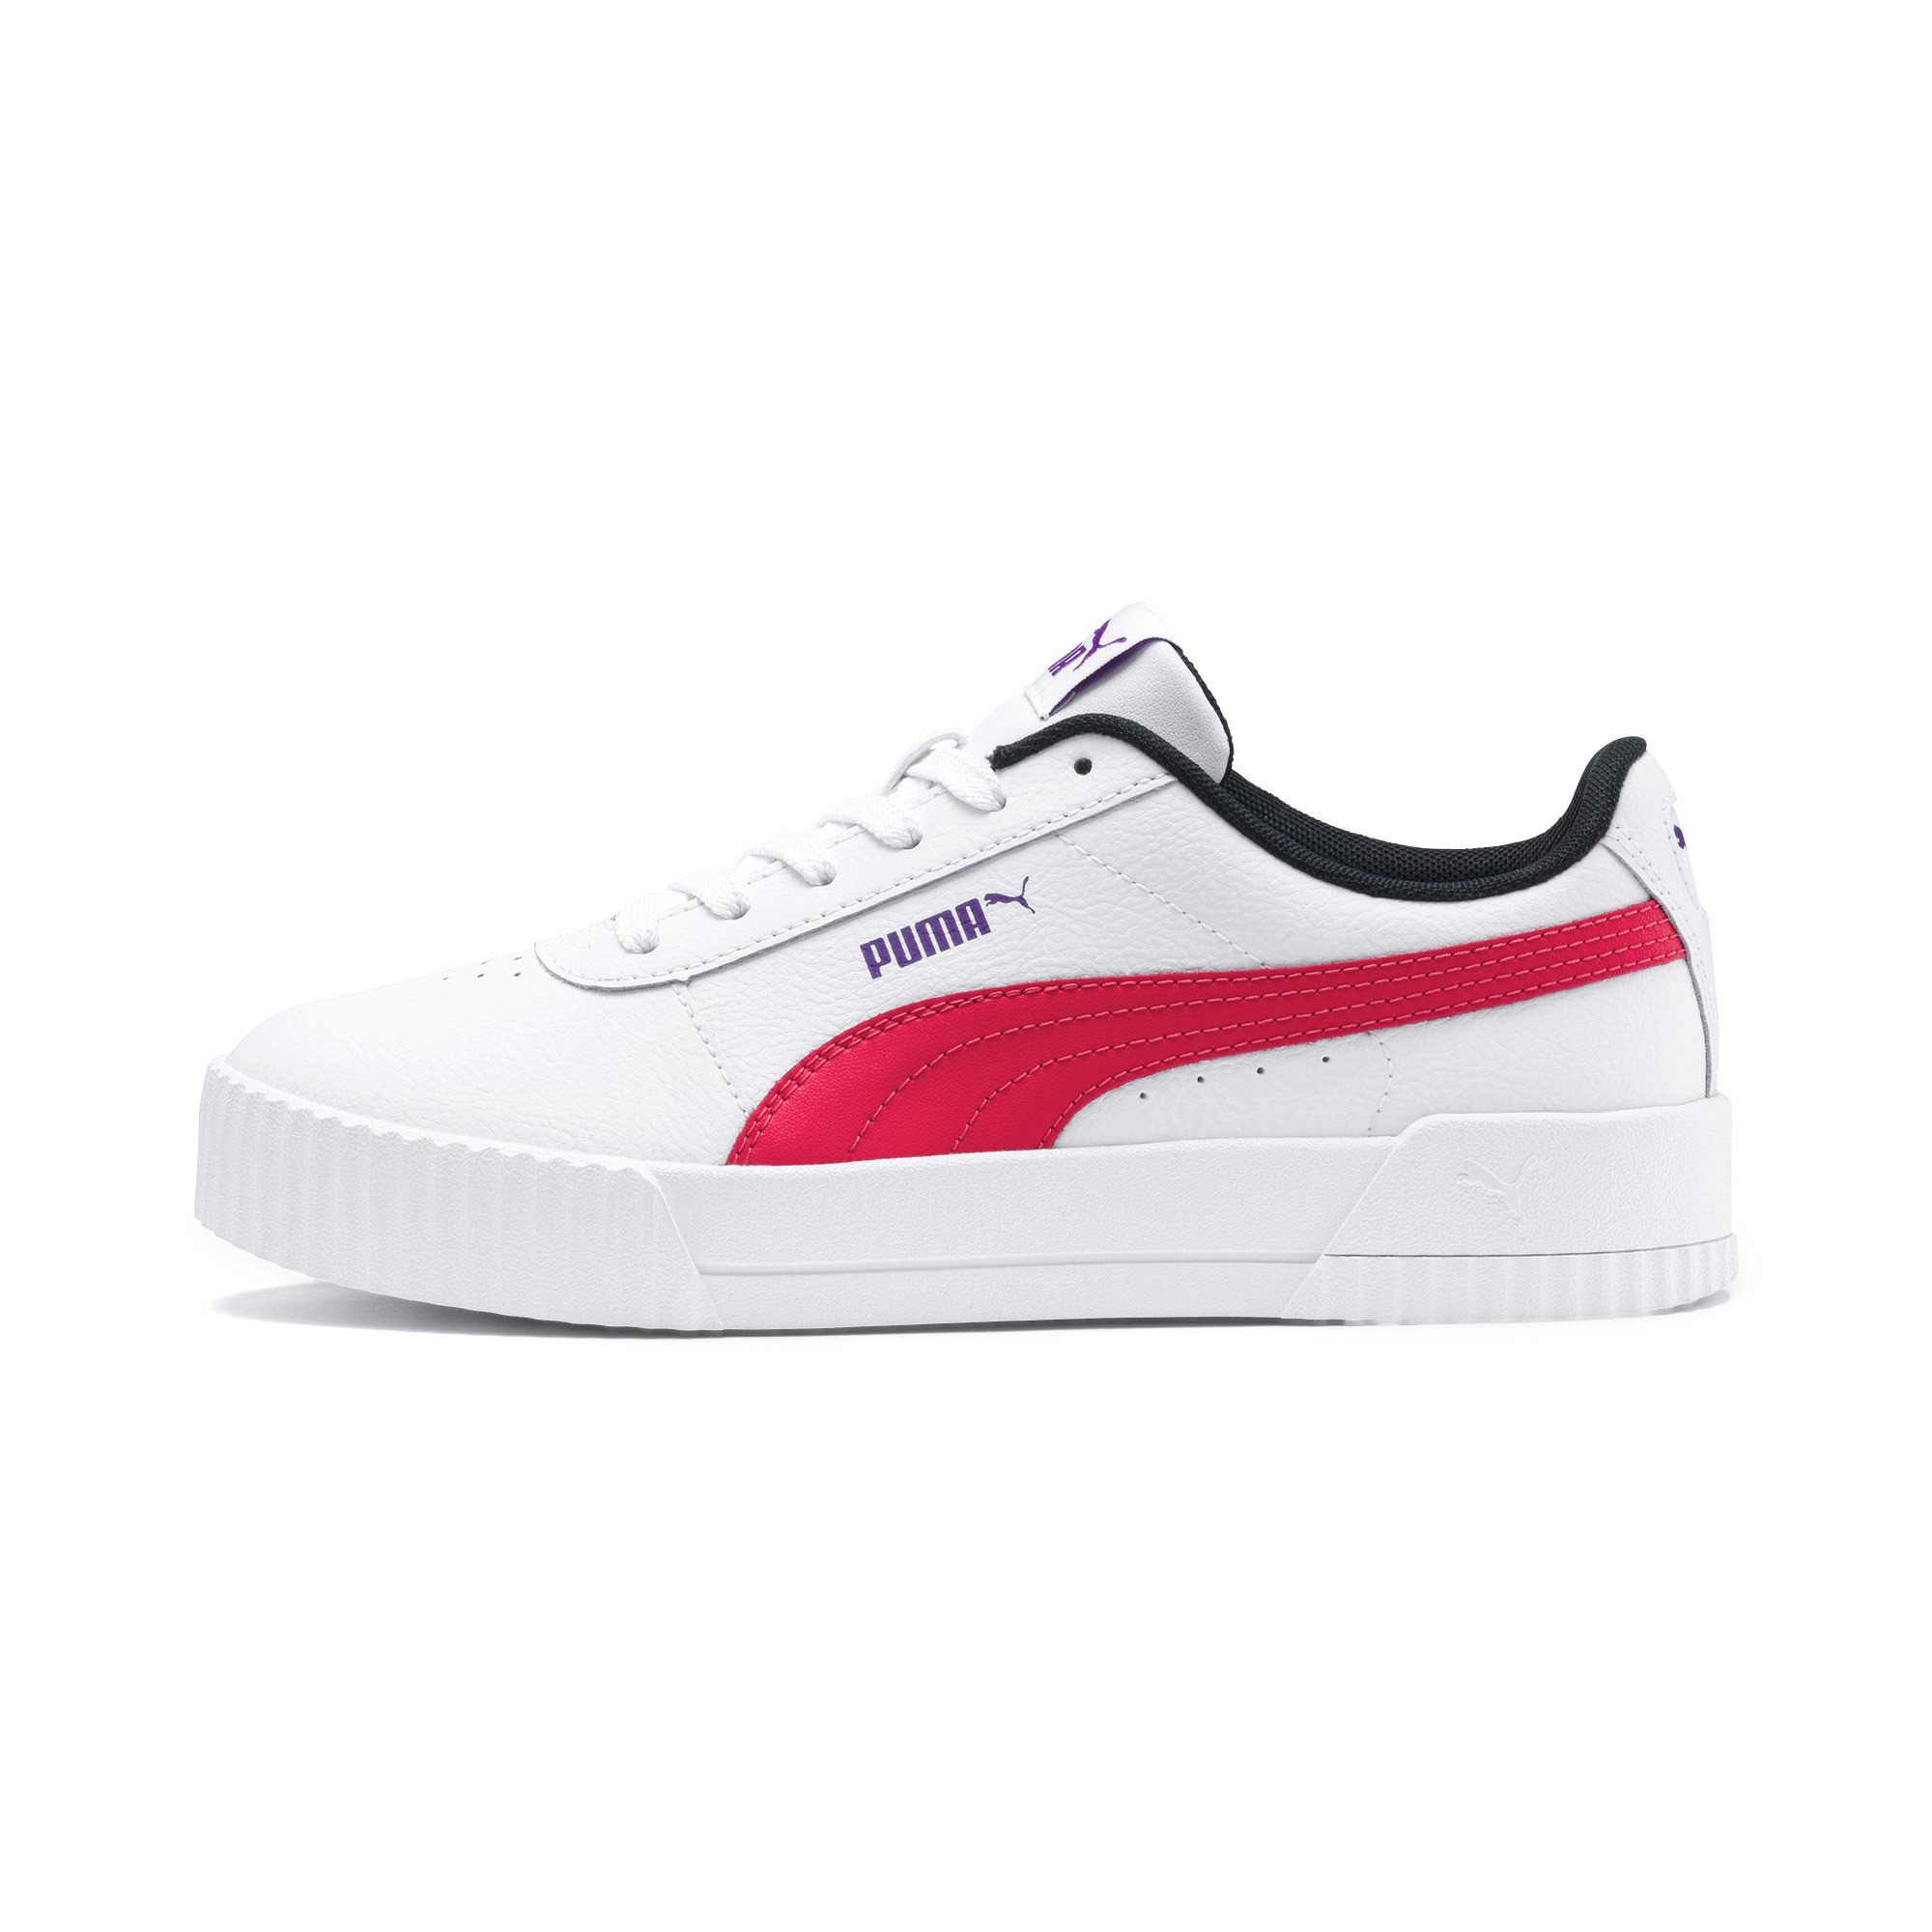 PUMA-Carina-Leather-Women-s-Sneakers-Women-Shoe-Basics thumbnail 16